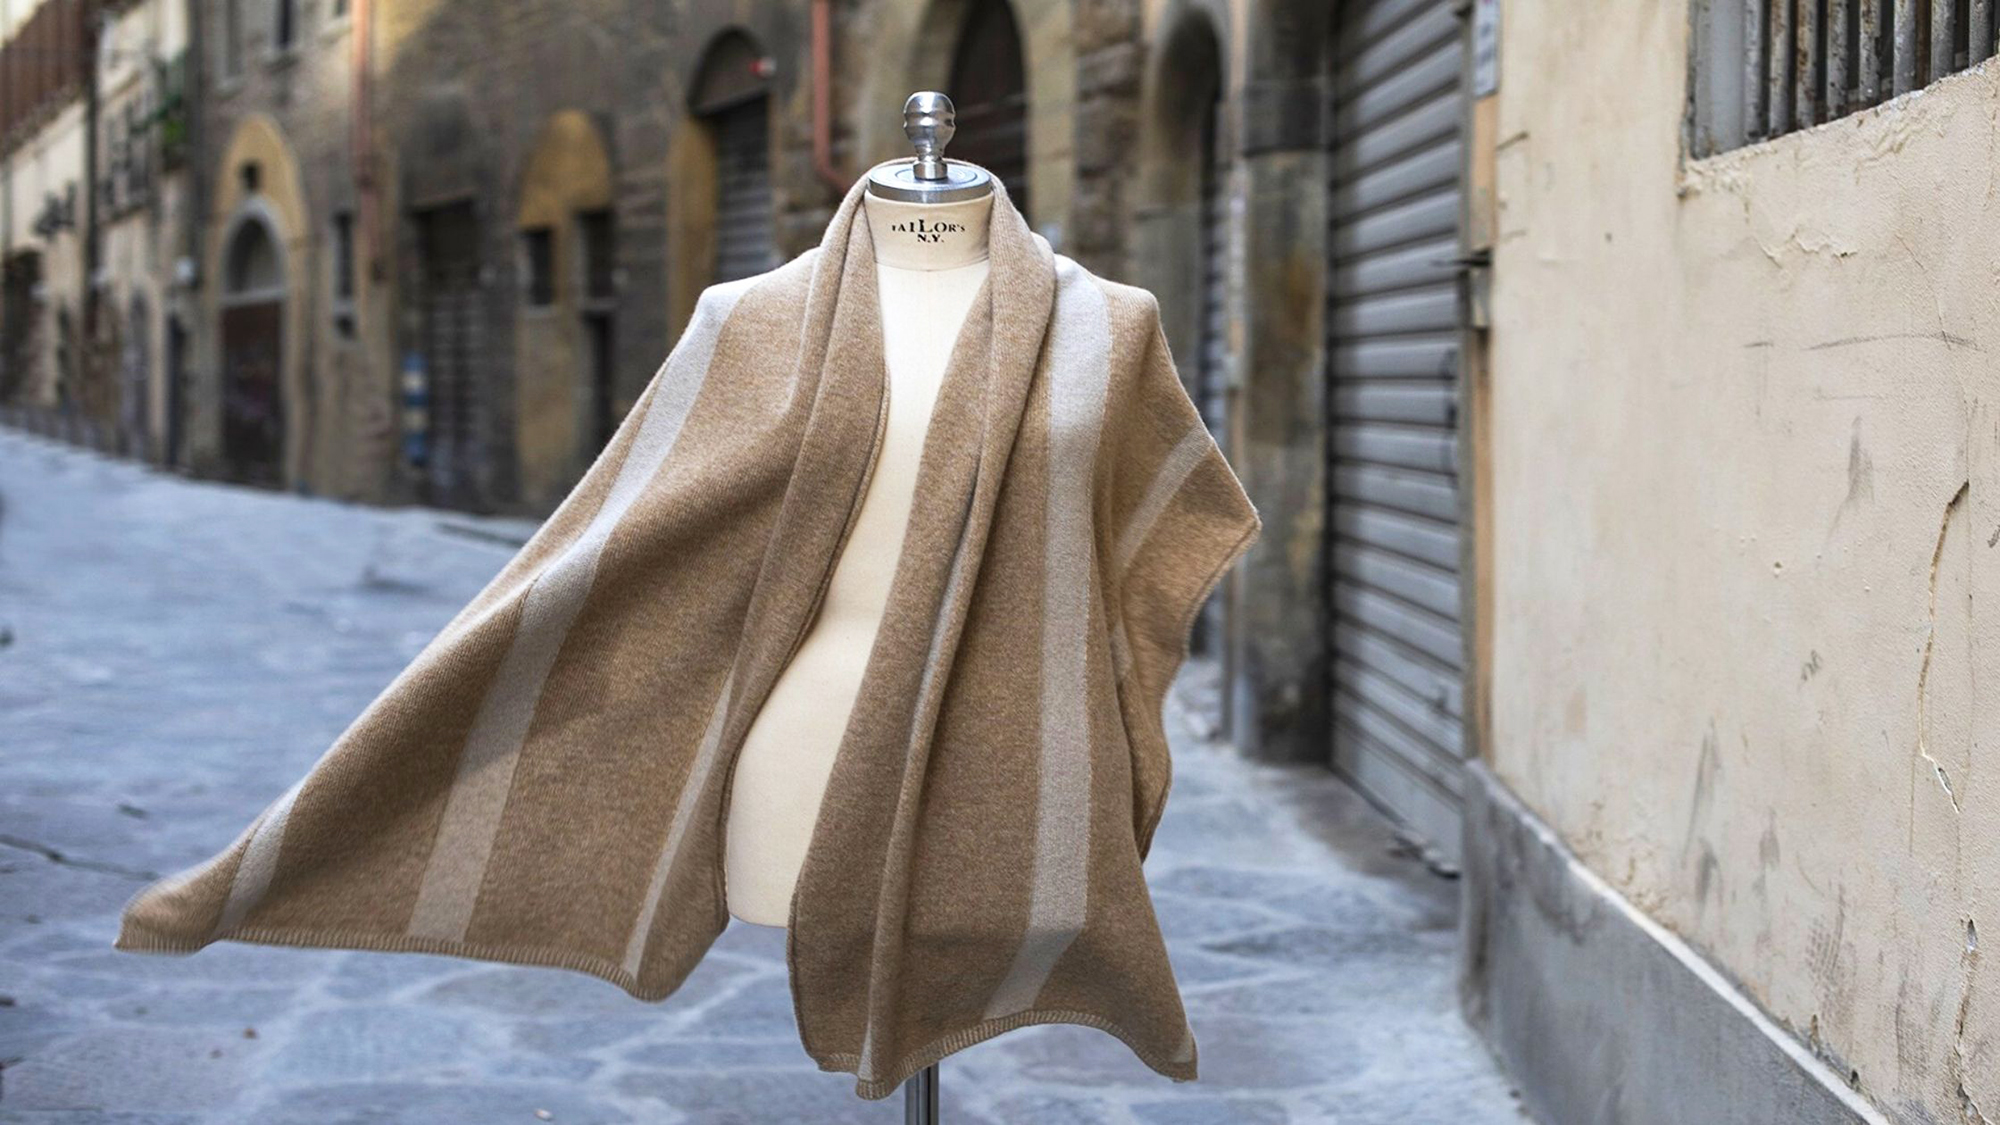 My Pieracci's beige sweater showcased on the street in Florence